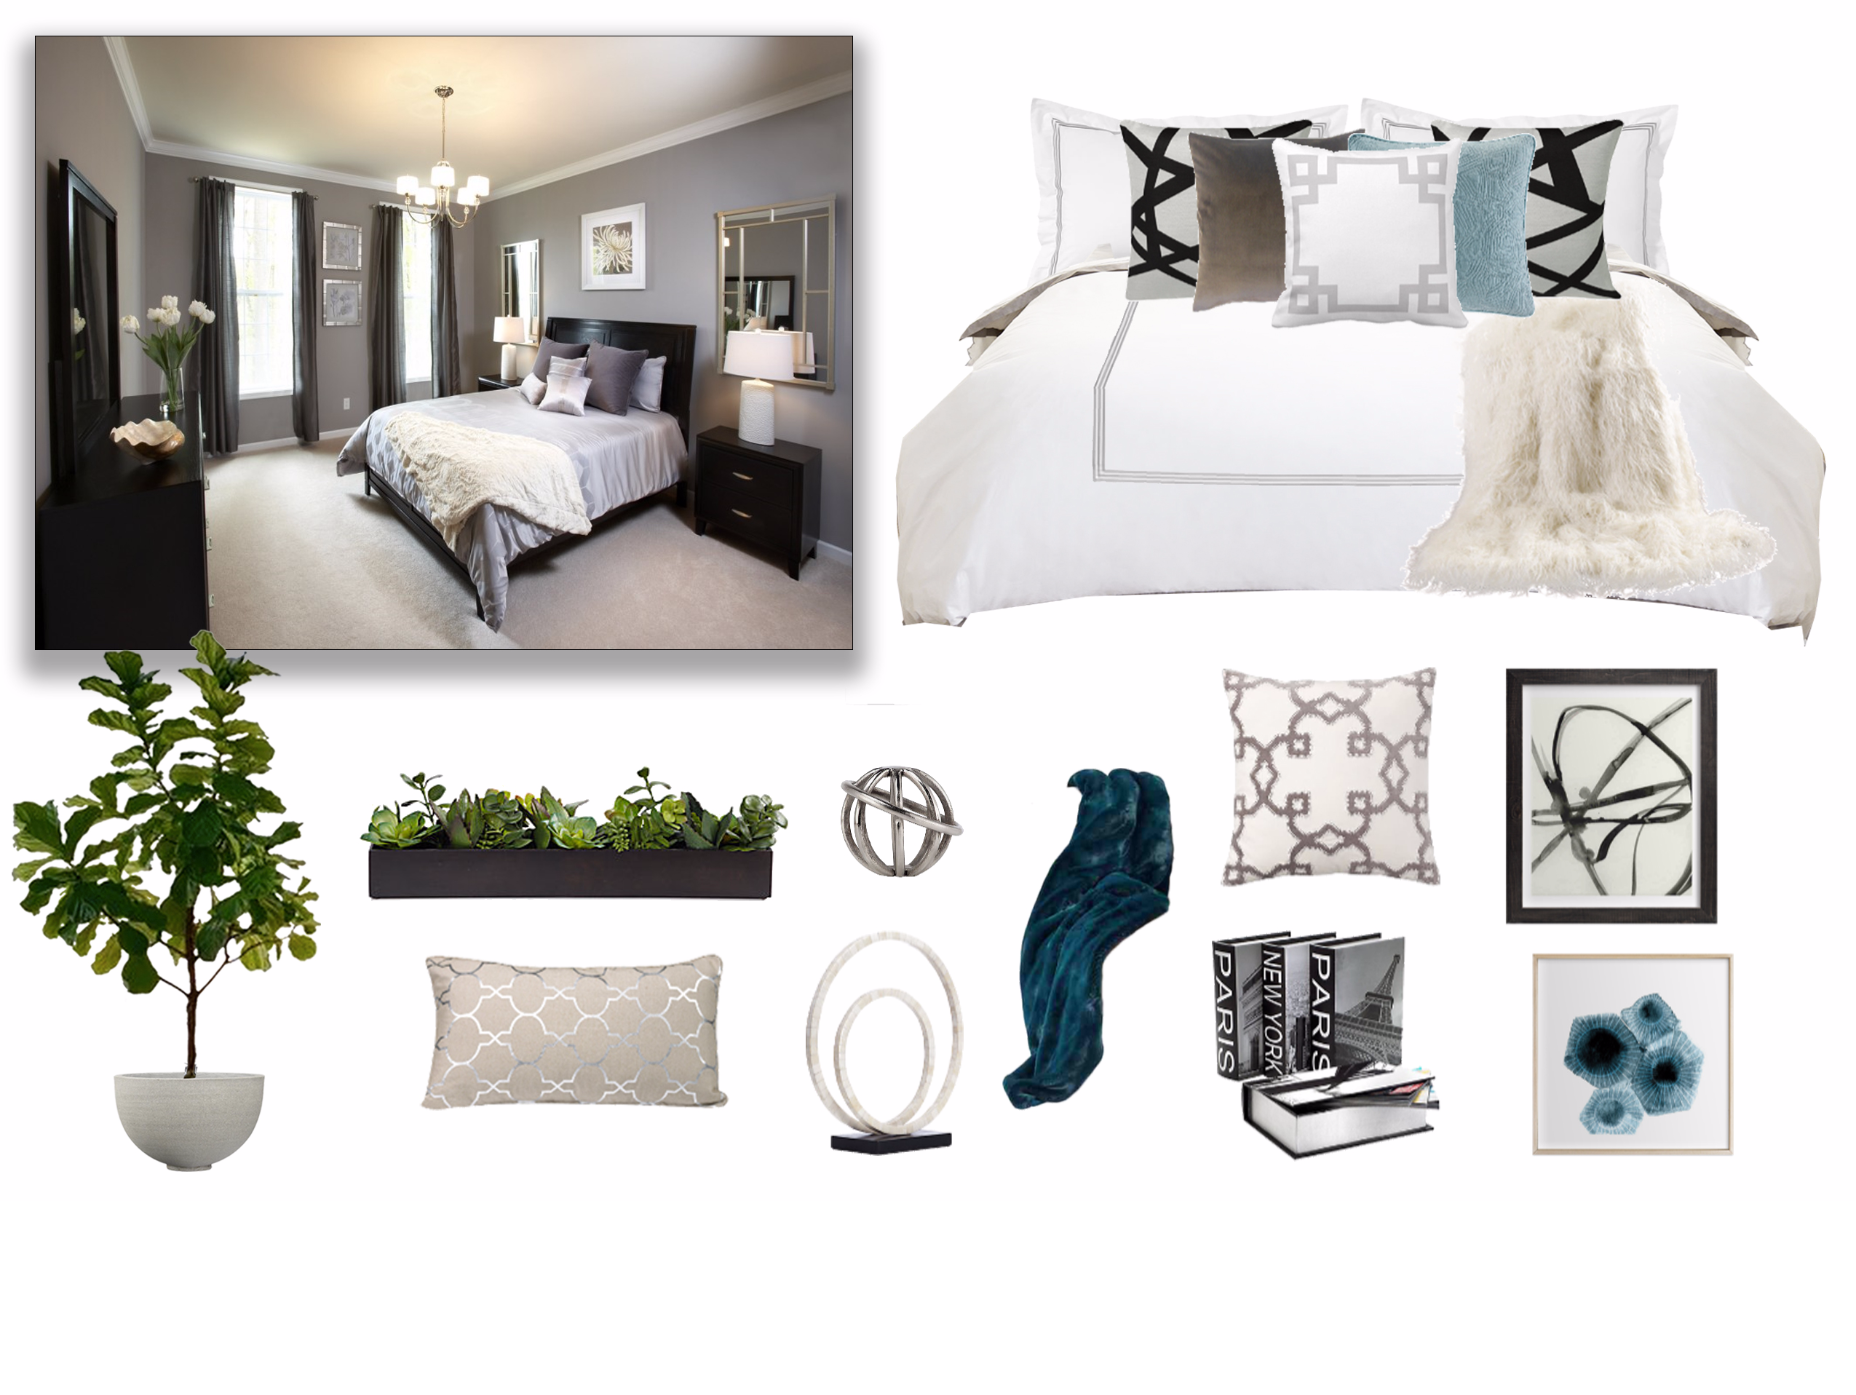 free expert online interior design advice accessorizing a guest bedroom